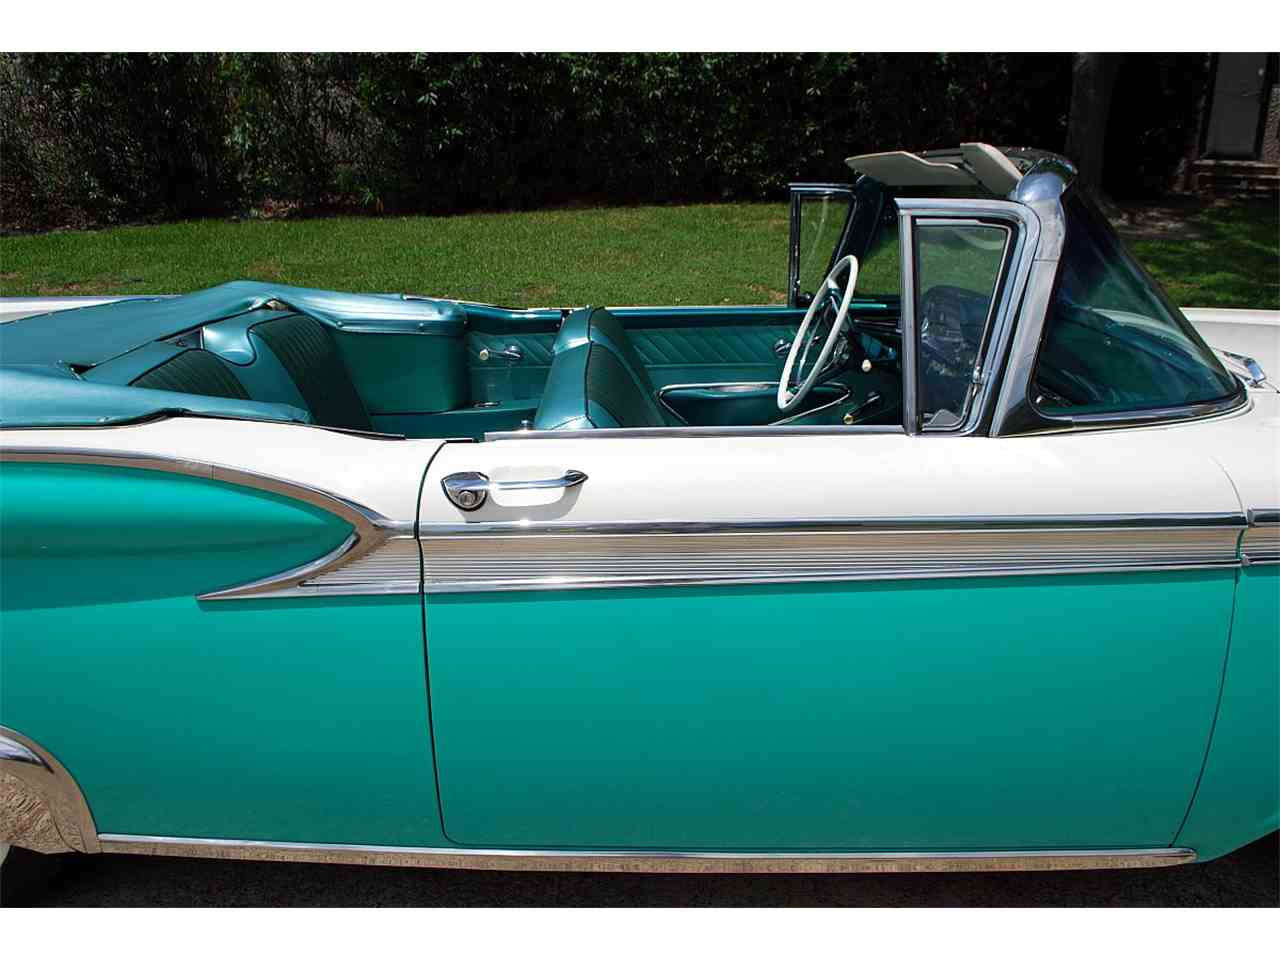 Large Picture of '59 Galaxie located in Texas - $39,999.00 - LBGZ